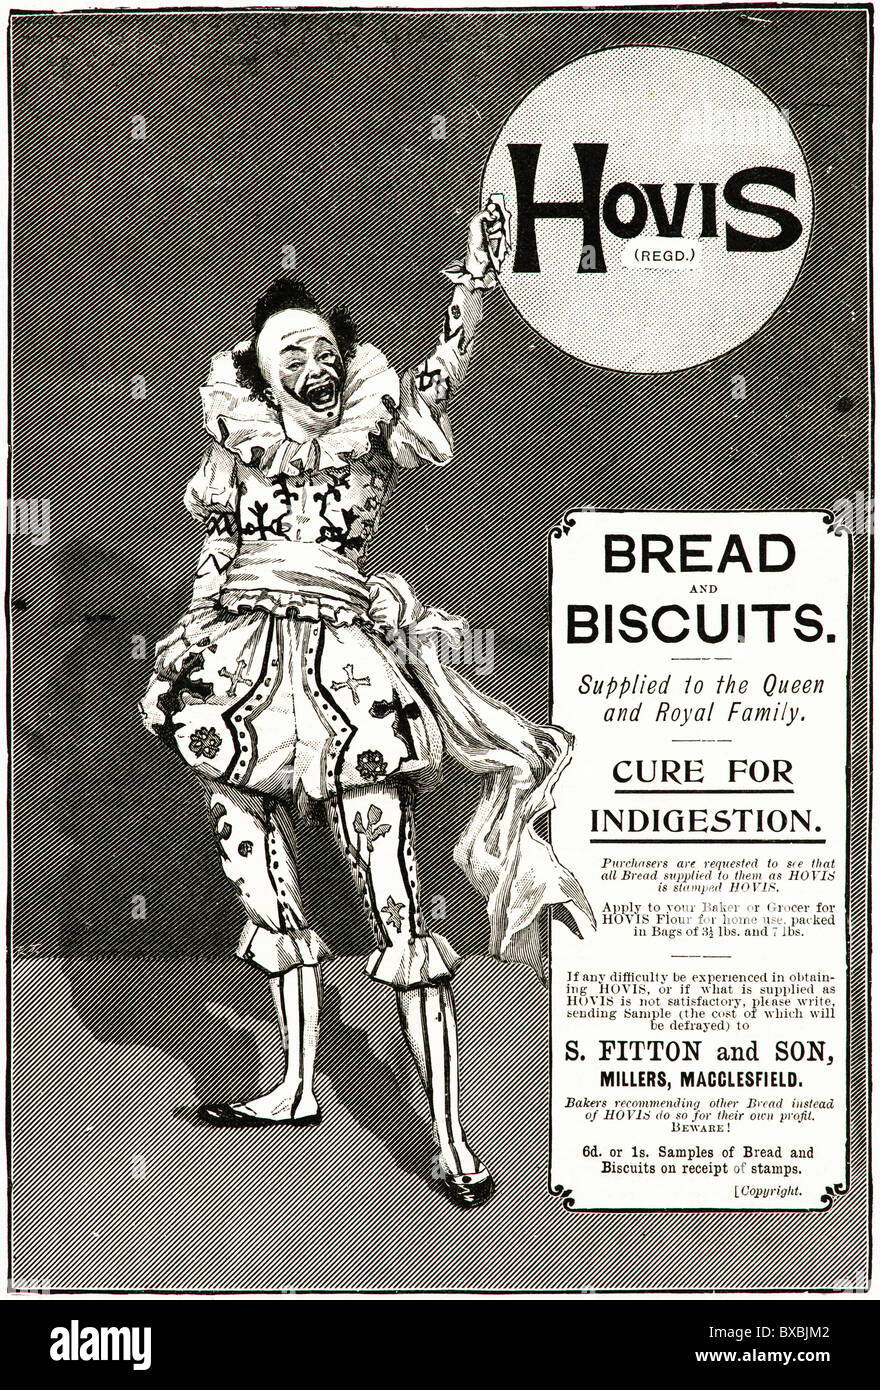 Victorian advertisement circa 1895 for Hovis bread and biscuits - Stock Image